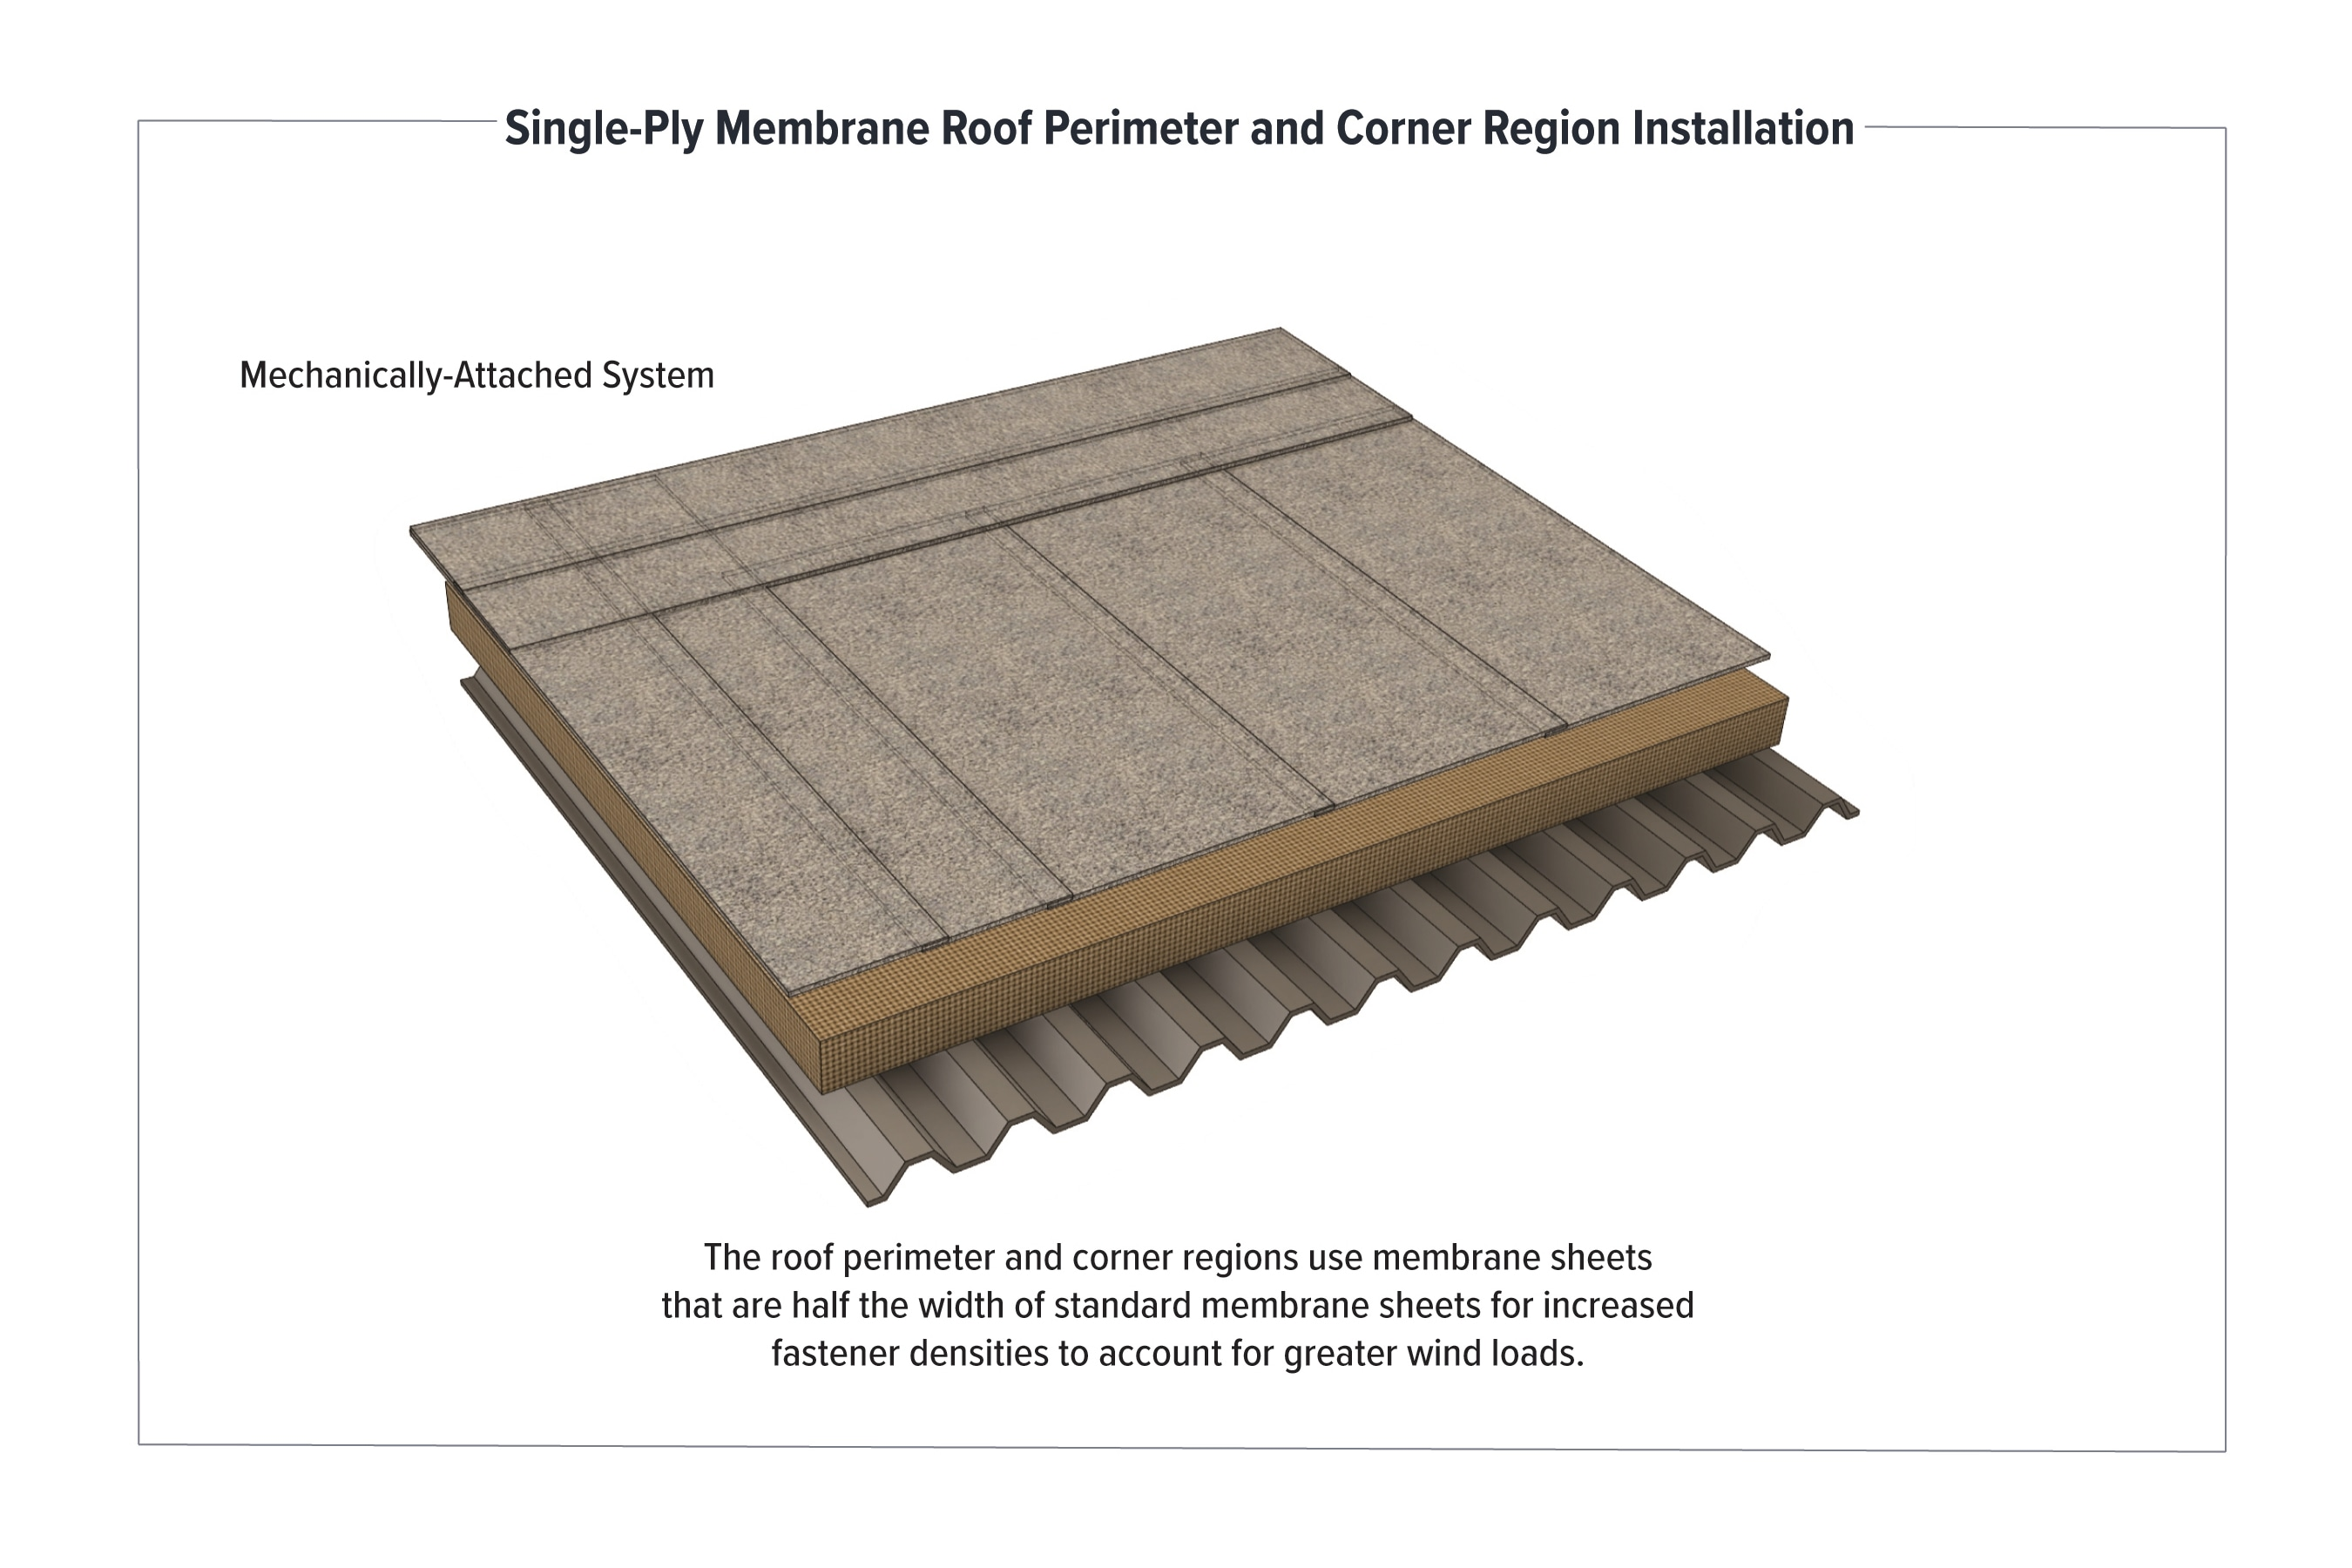 The low-slope roof perimeter and corner regions use membrane sheets that are half the width of standard membrane sheets for increased fastener densities to account for greater wind loads.